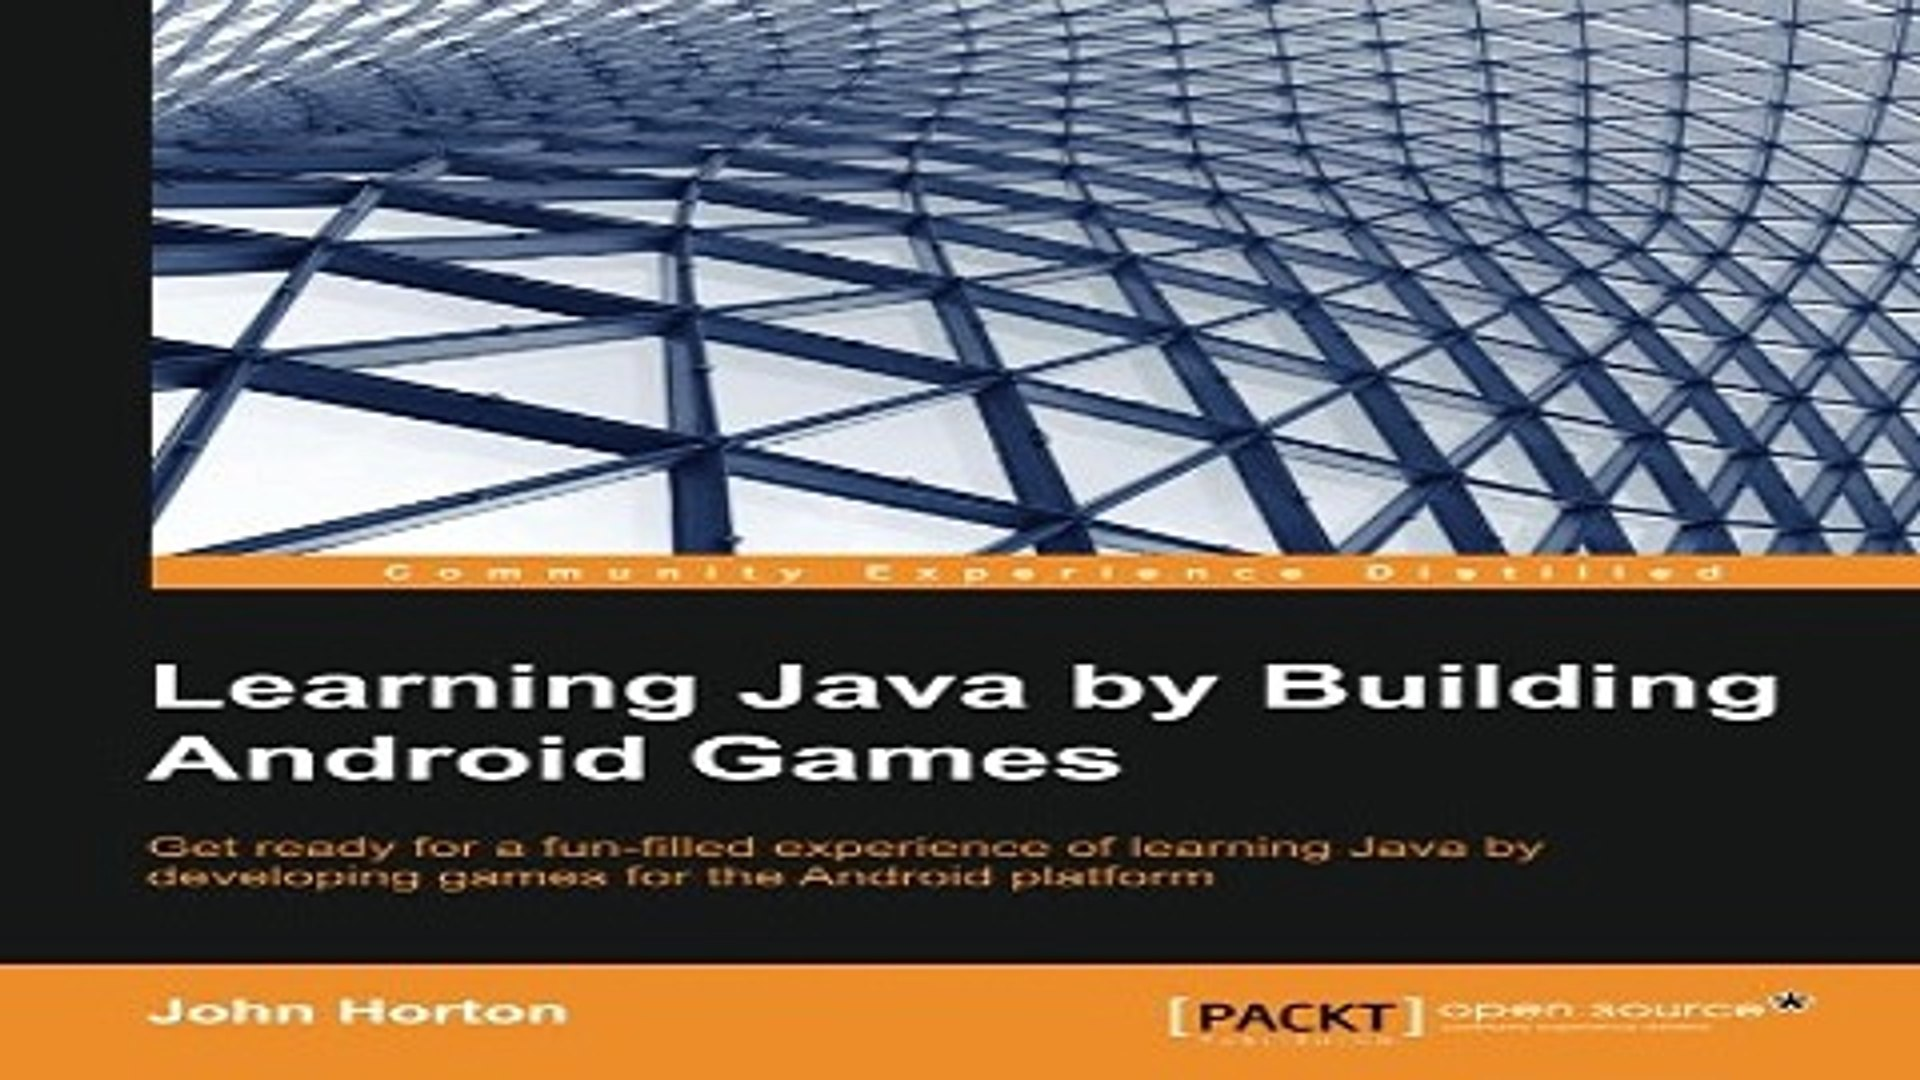 Read Learning Java by Building Android Games   Explore Java Through Mobile Game Development Ebook